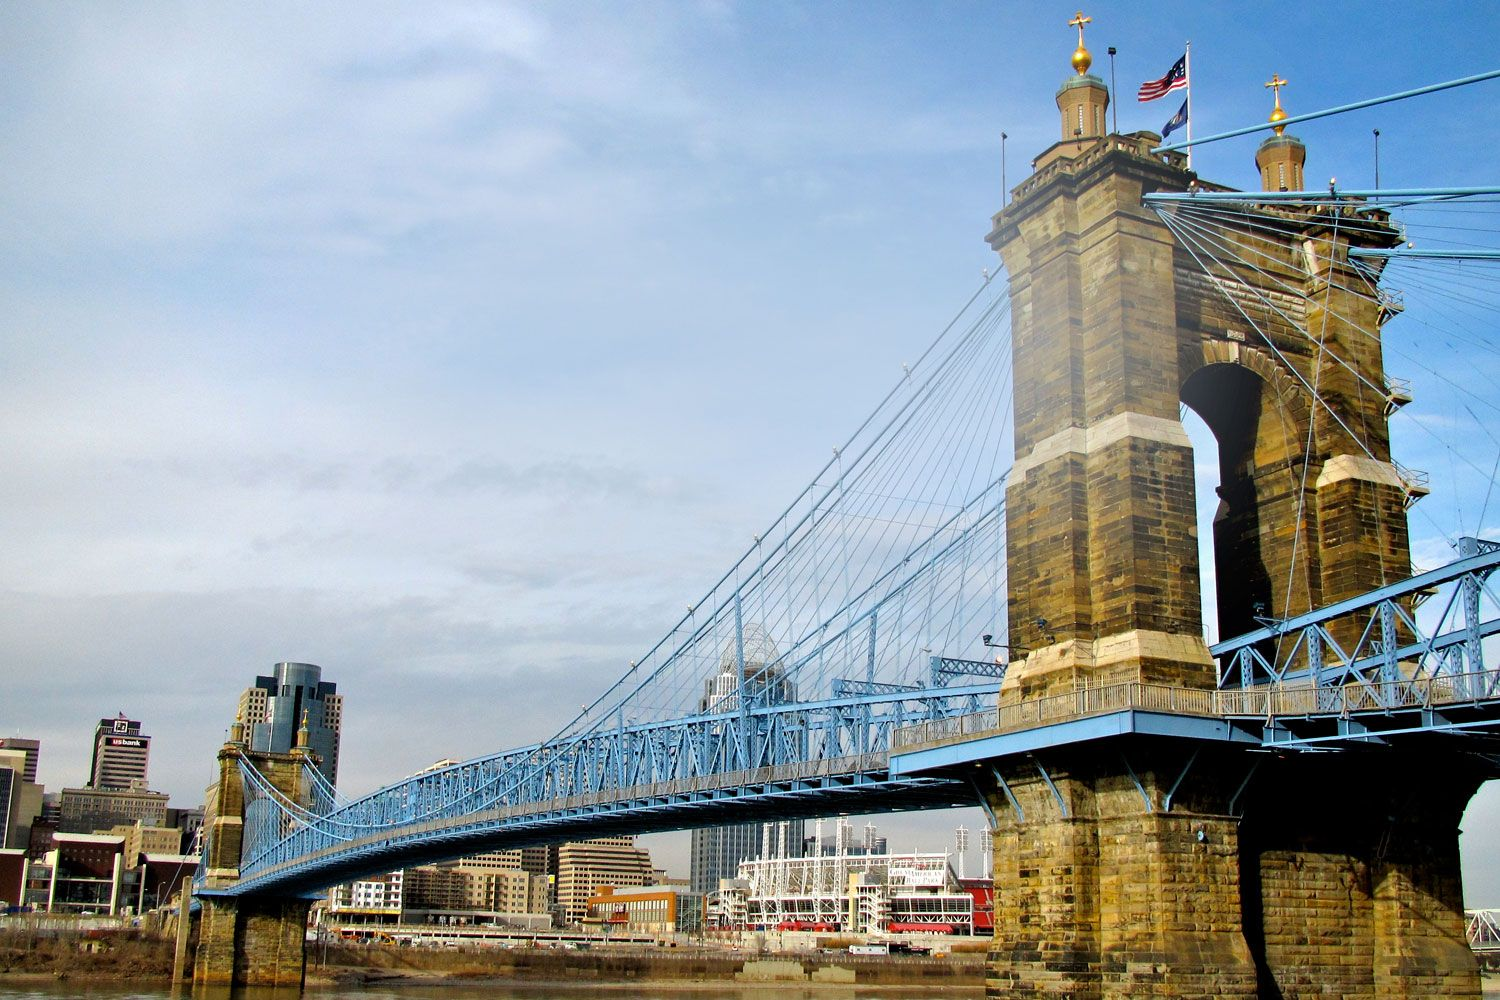 The iconic suspension bridge paid for by chnks founder